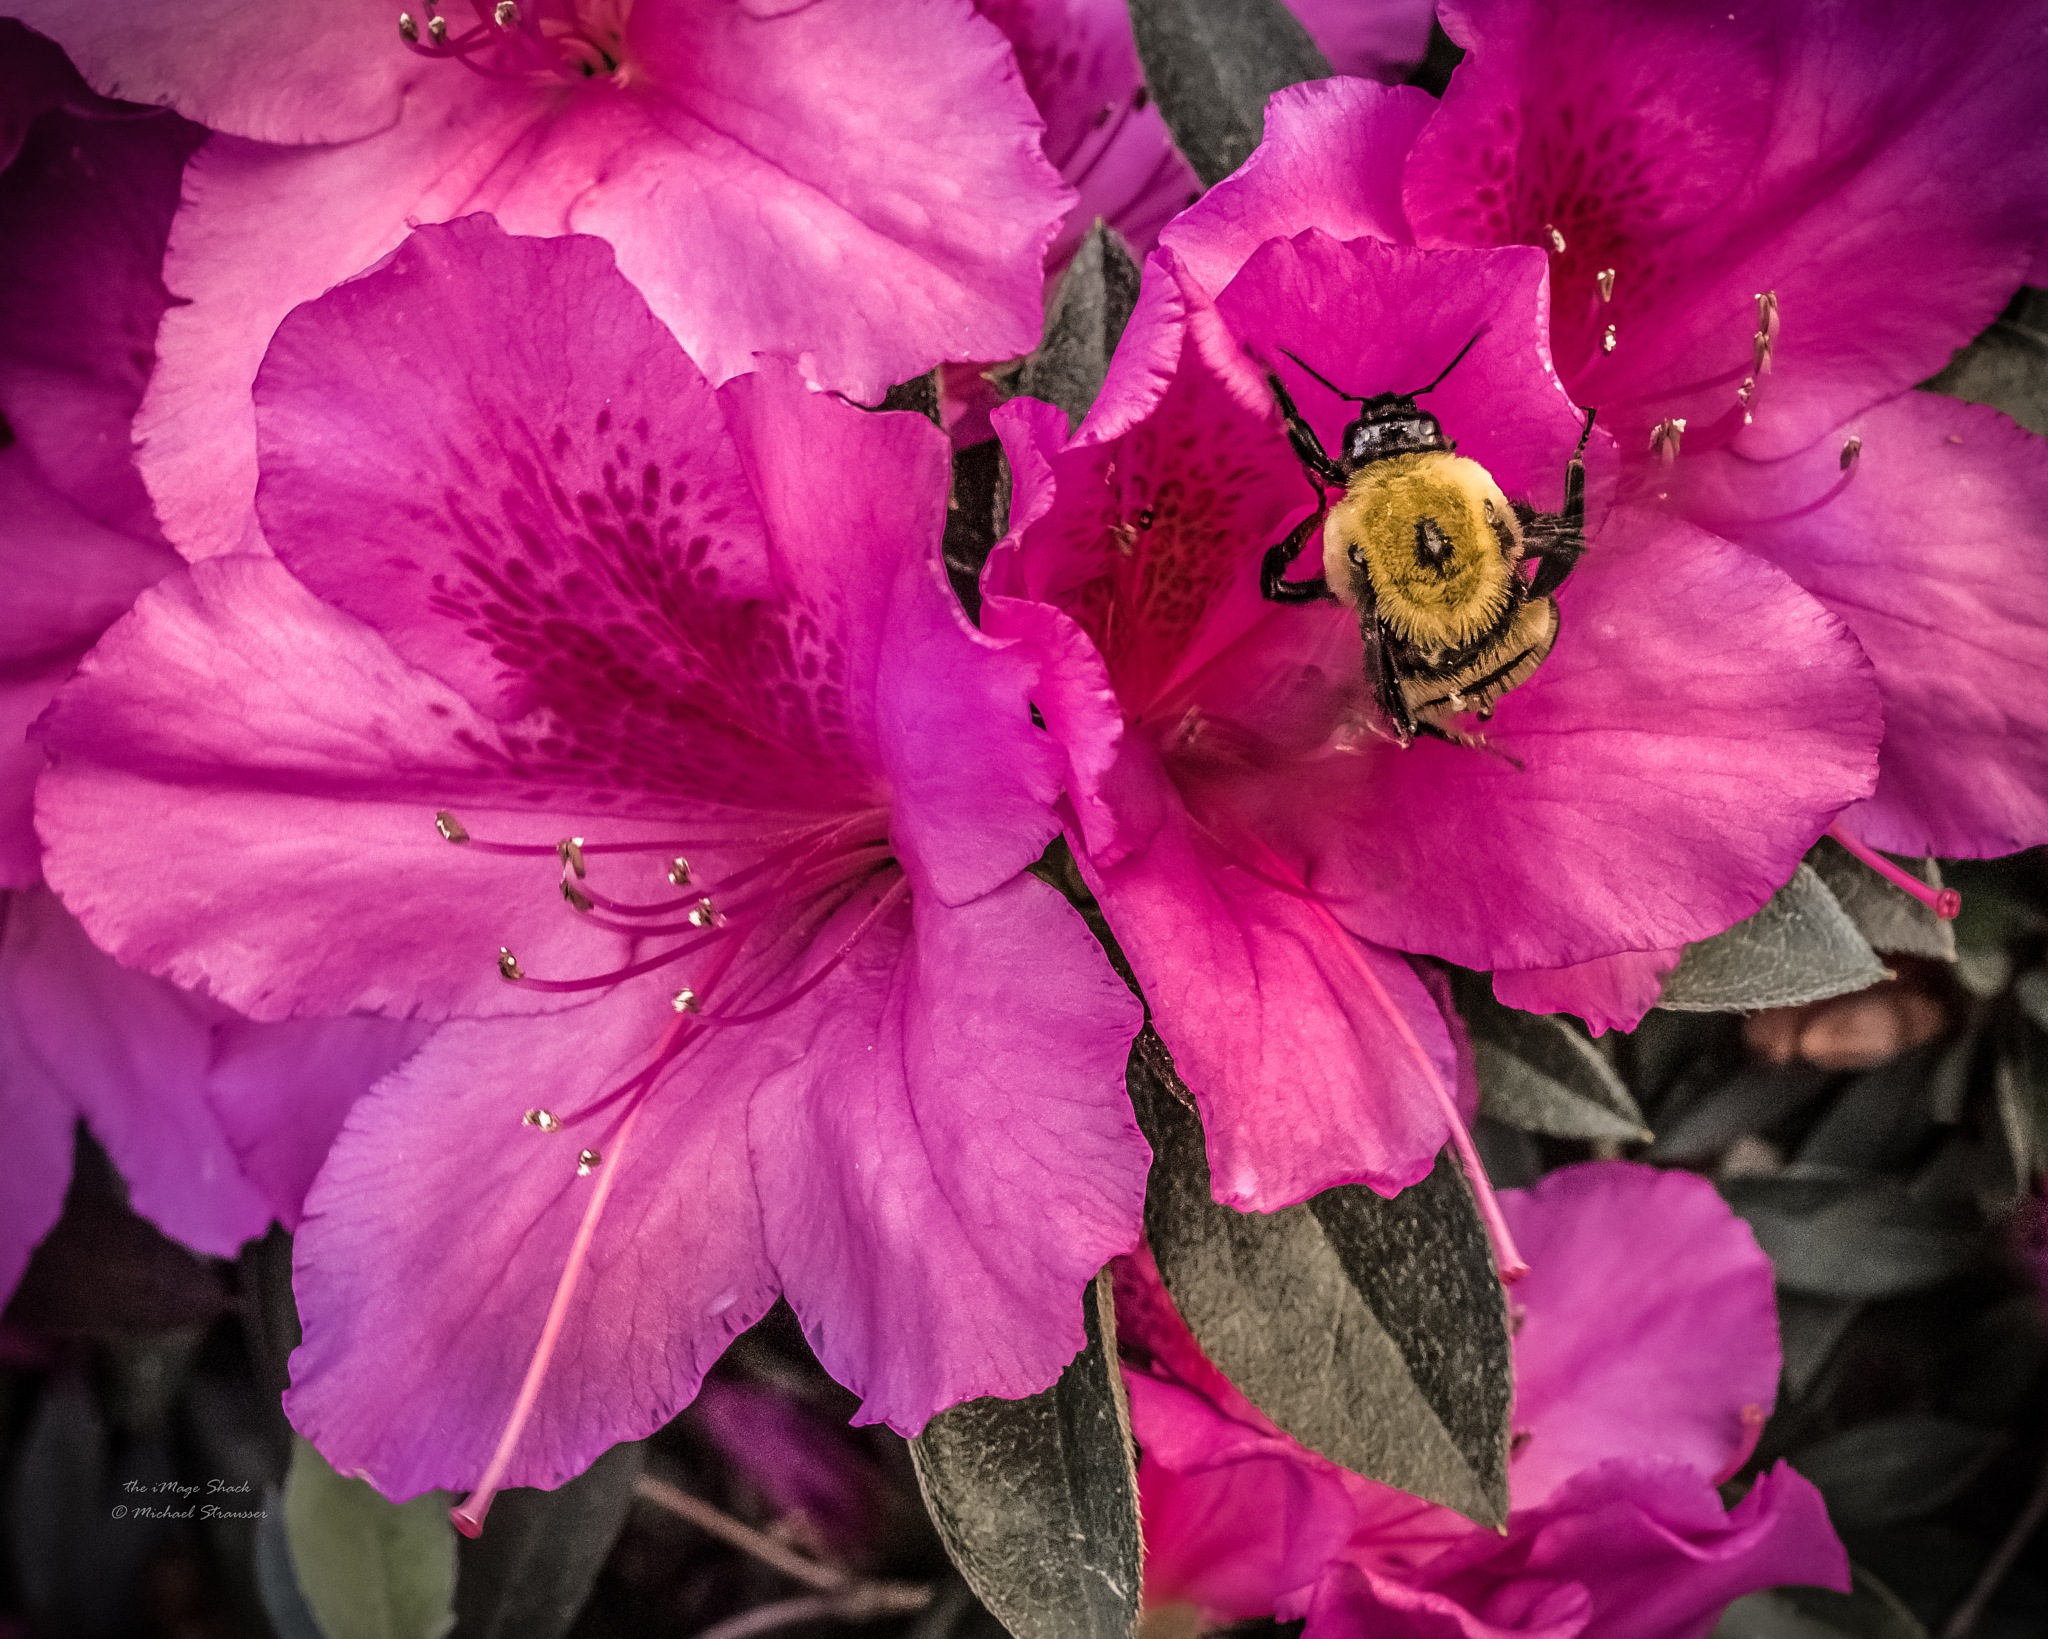 bumble bee by MStrausser of the iMage Shack